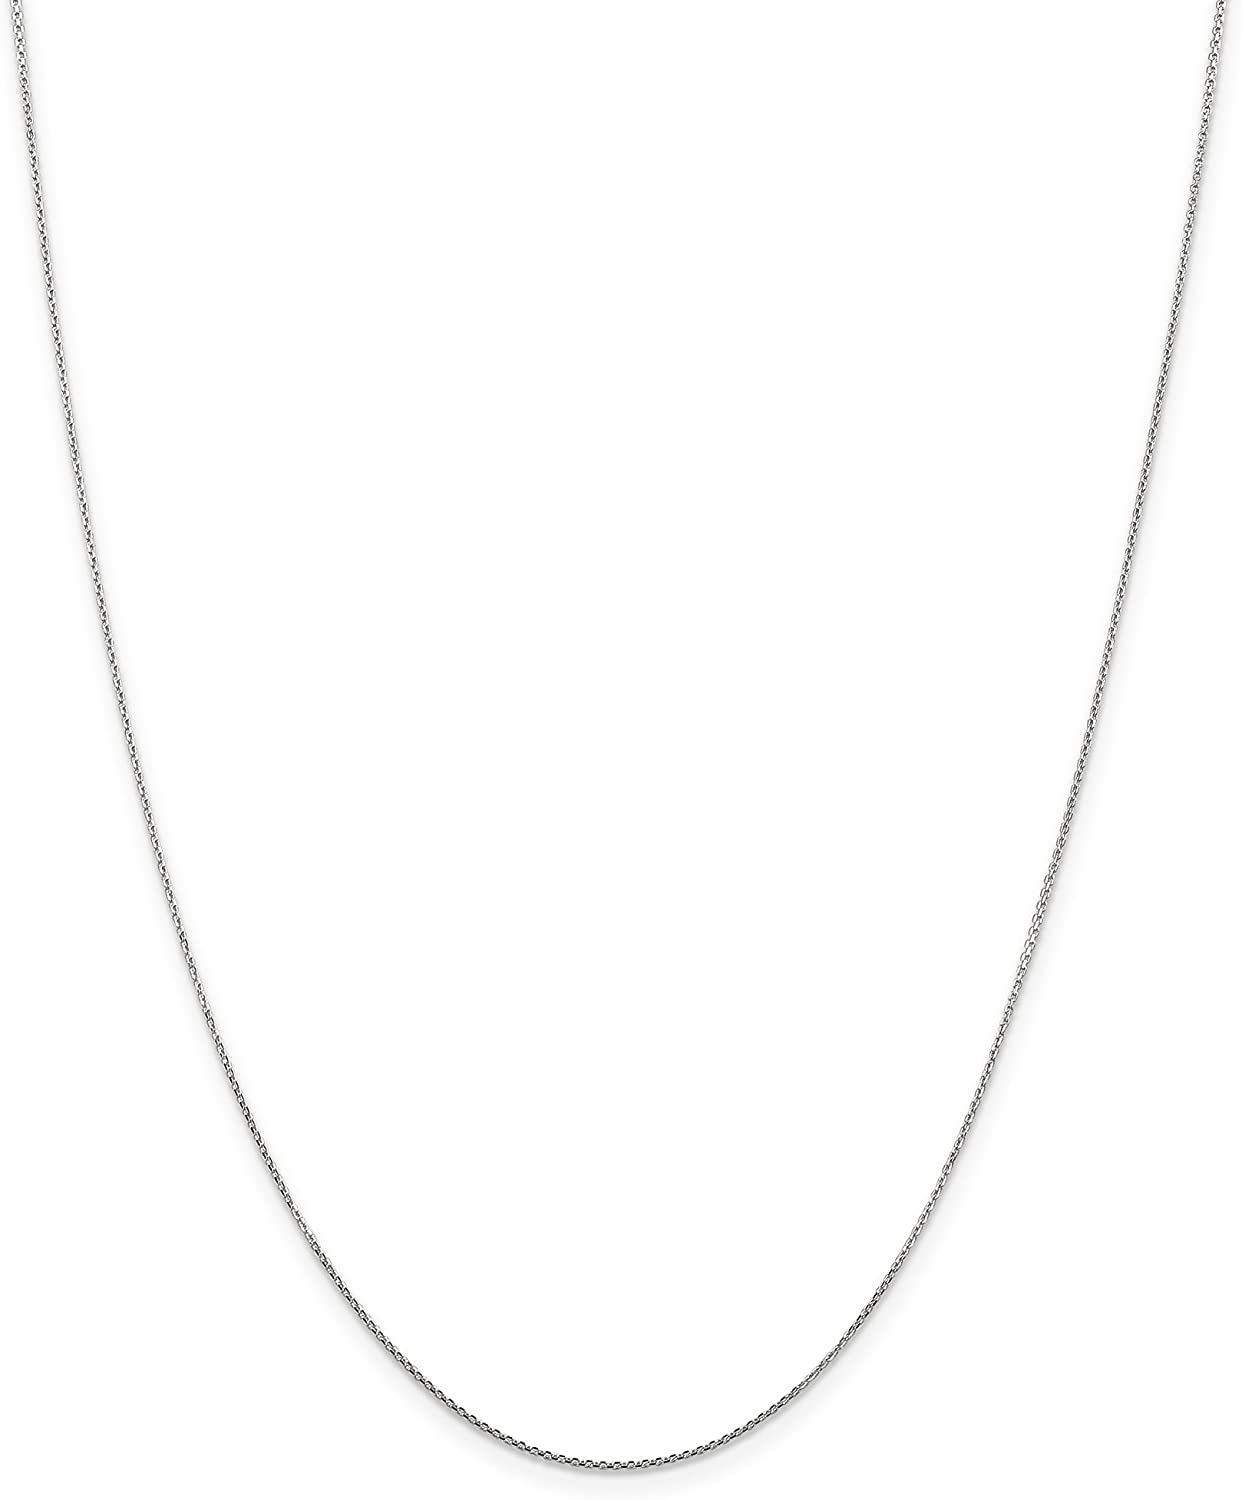 10k White Gold 0.80mm Diamond Cut Cable Chain Necklace 16 inch - 24 inch for Men Women